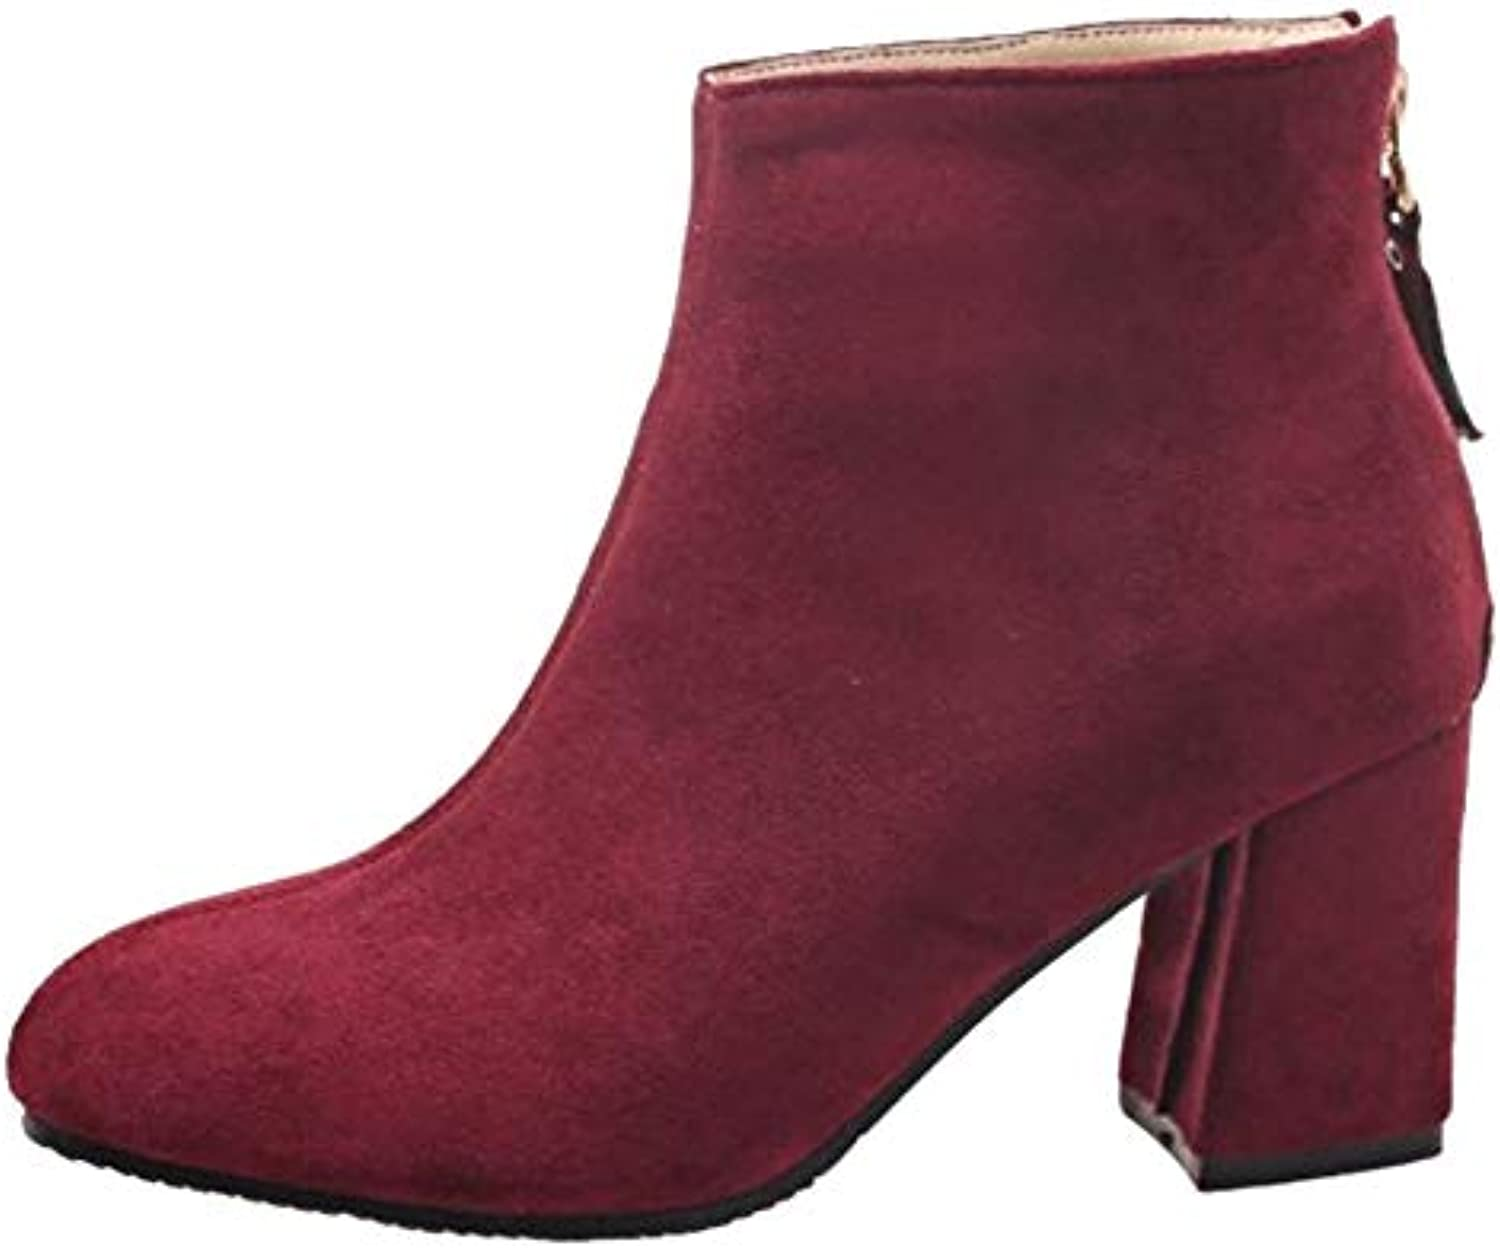 39720084b91f Cocey Cocey Cocey Women Fashion Chunky Ankle Booties B07H8CW254 Parent  447a0c